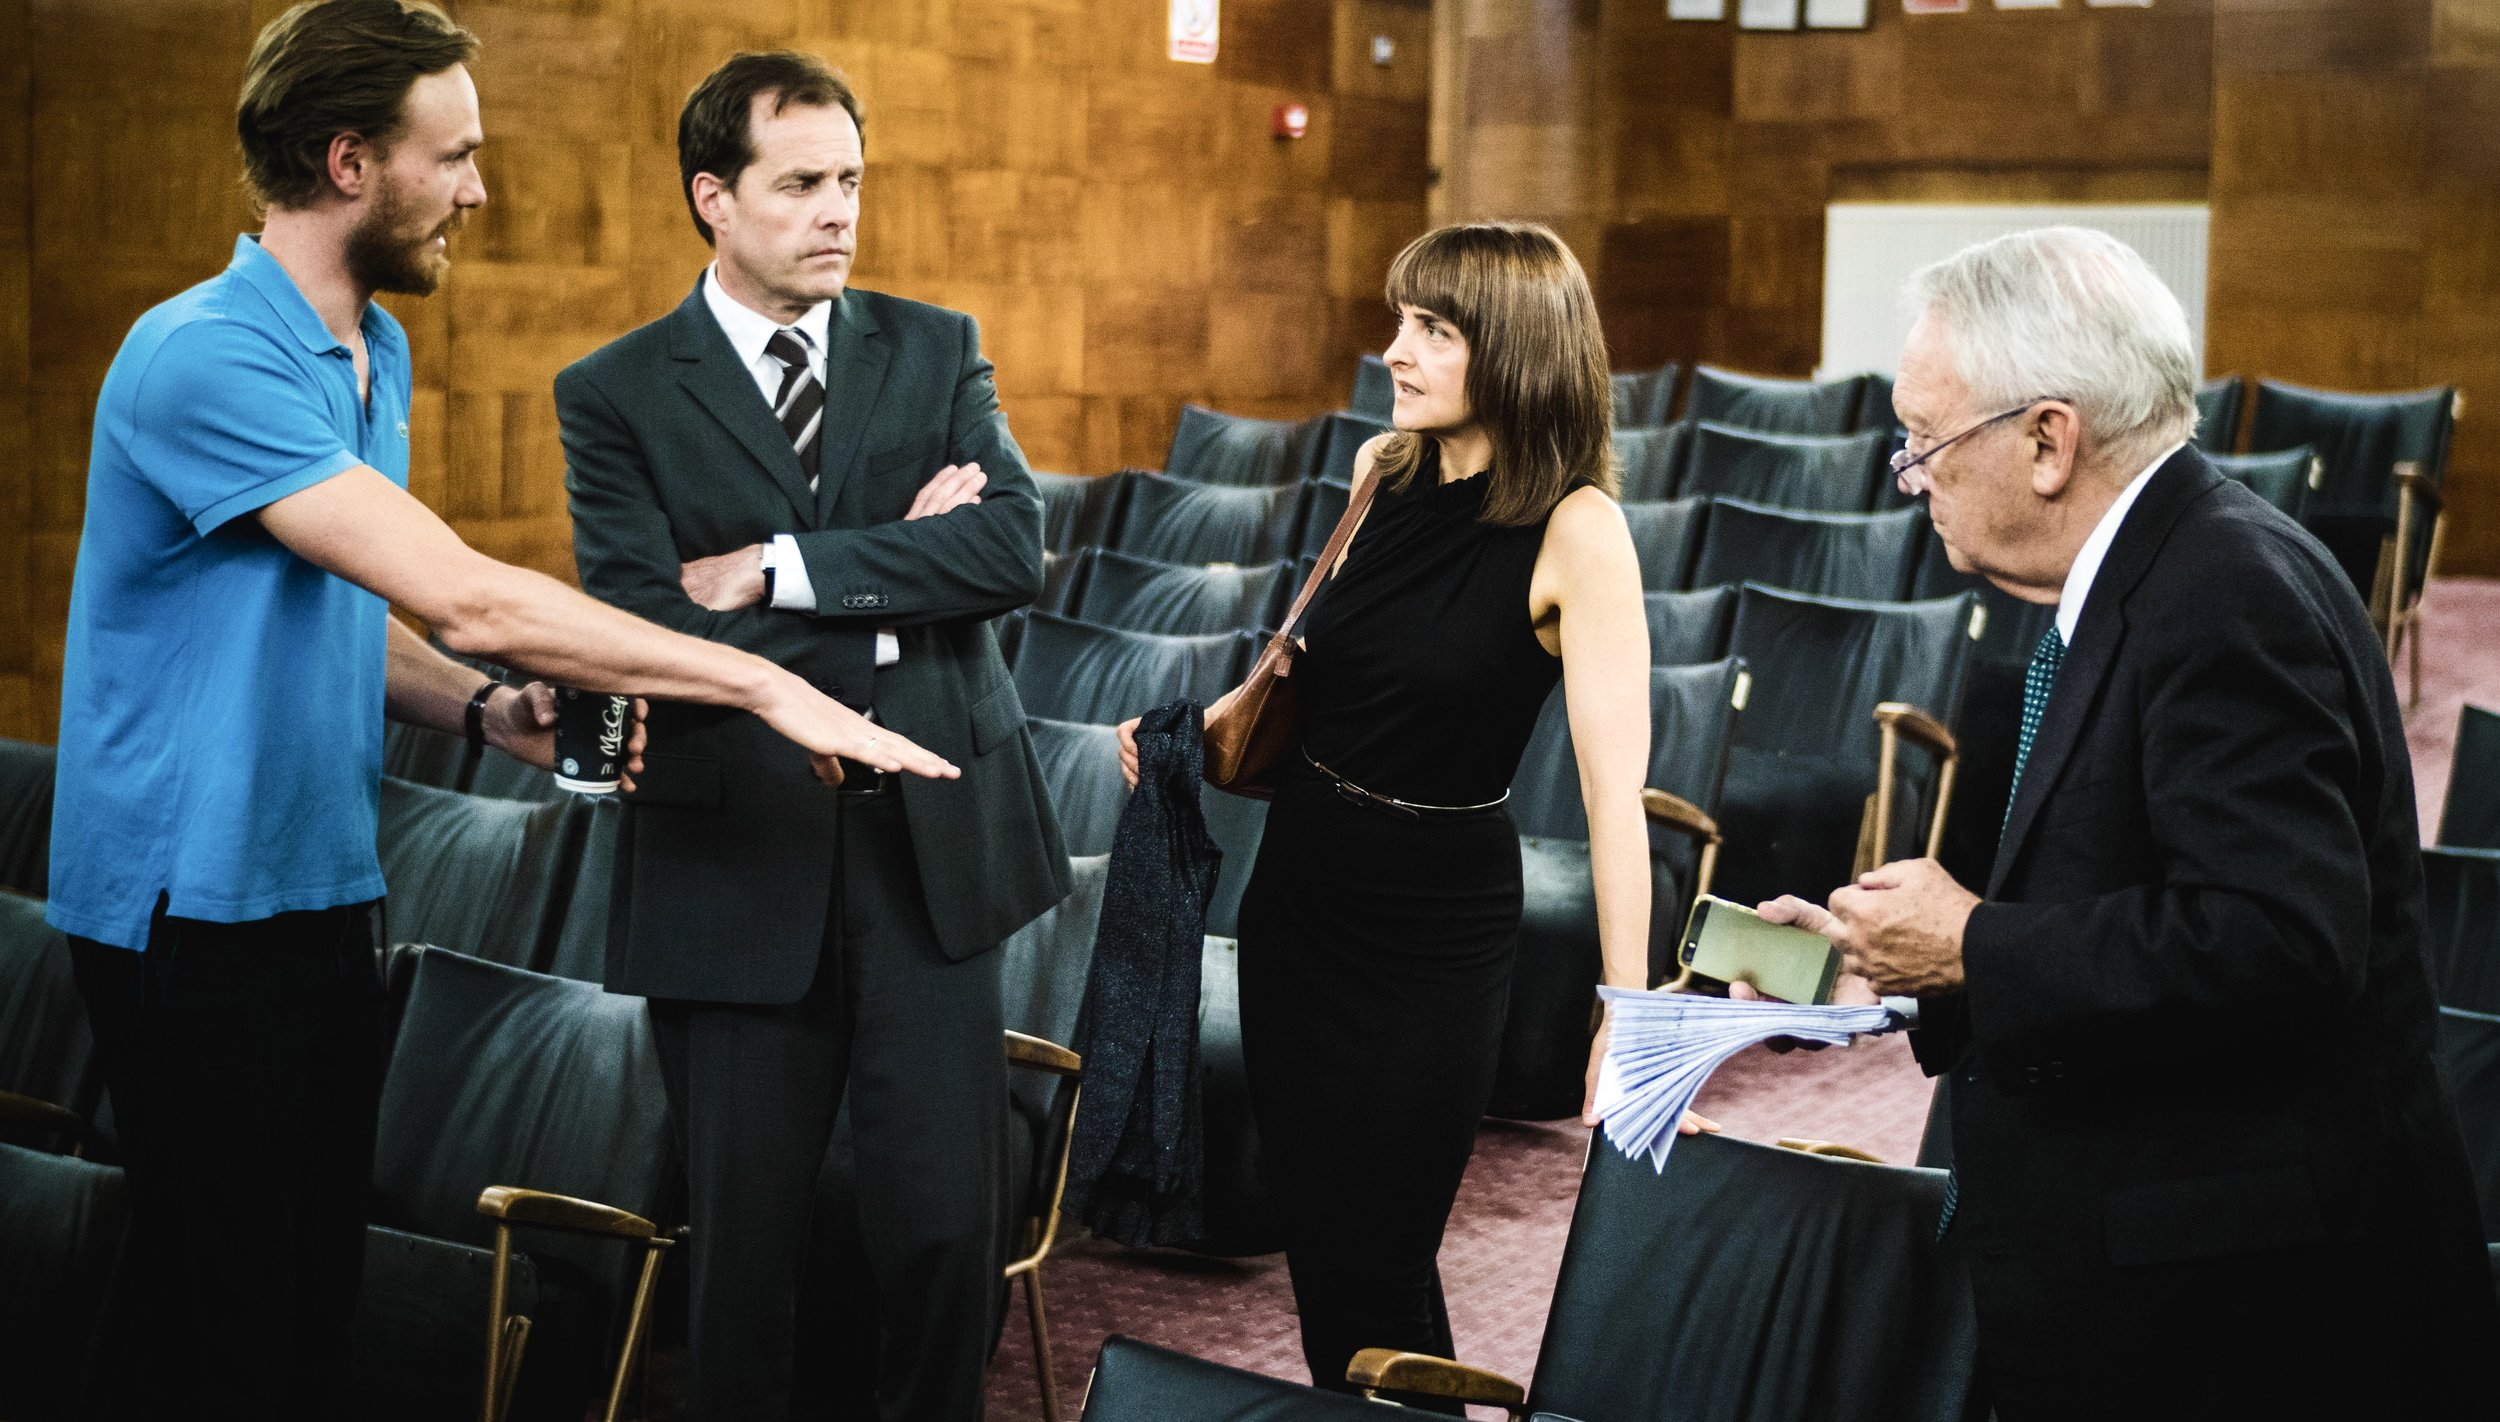 August 2017 - rehearsing a scene for short film, Courted, with Andres Heger-Bratterud, Nigel Anthony and Alastair Harvey.